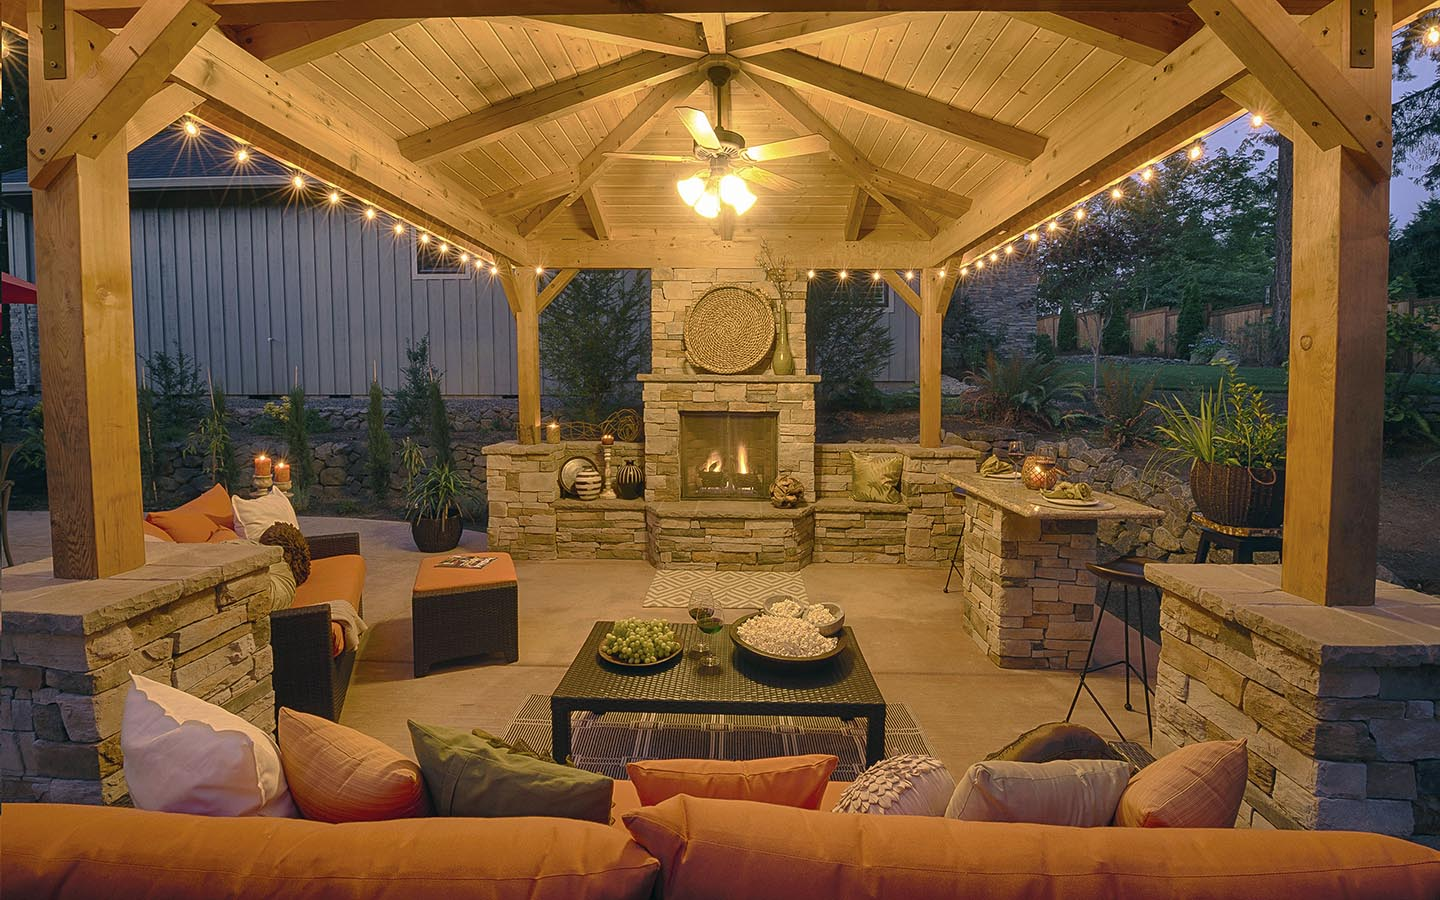 Canopy Living Room : Gazebos in outdoor living spaces paradise restored